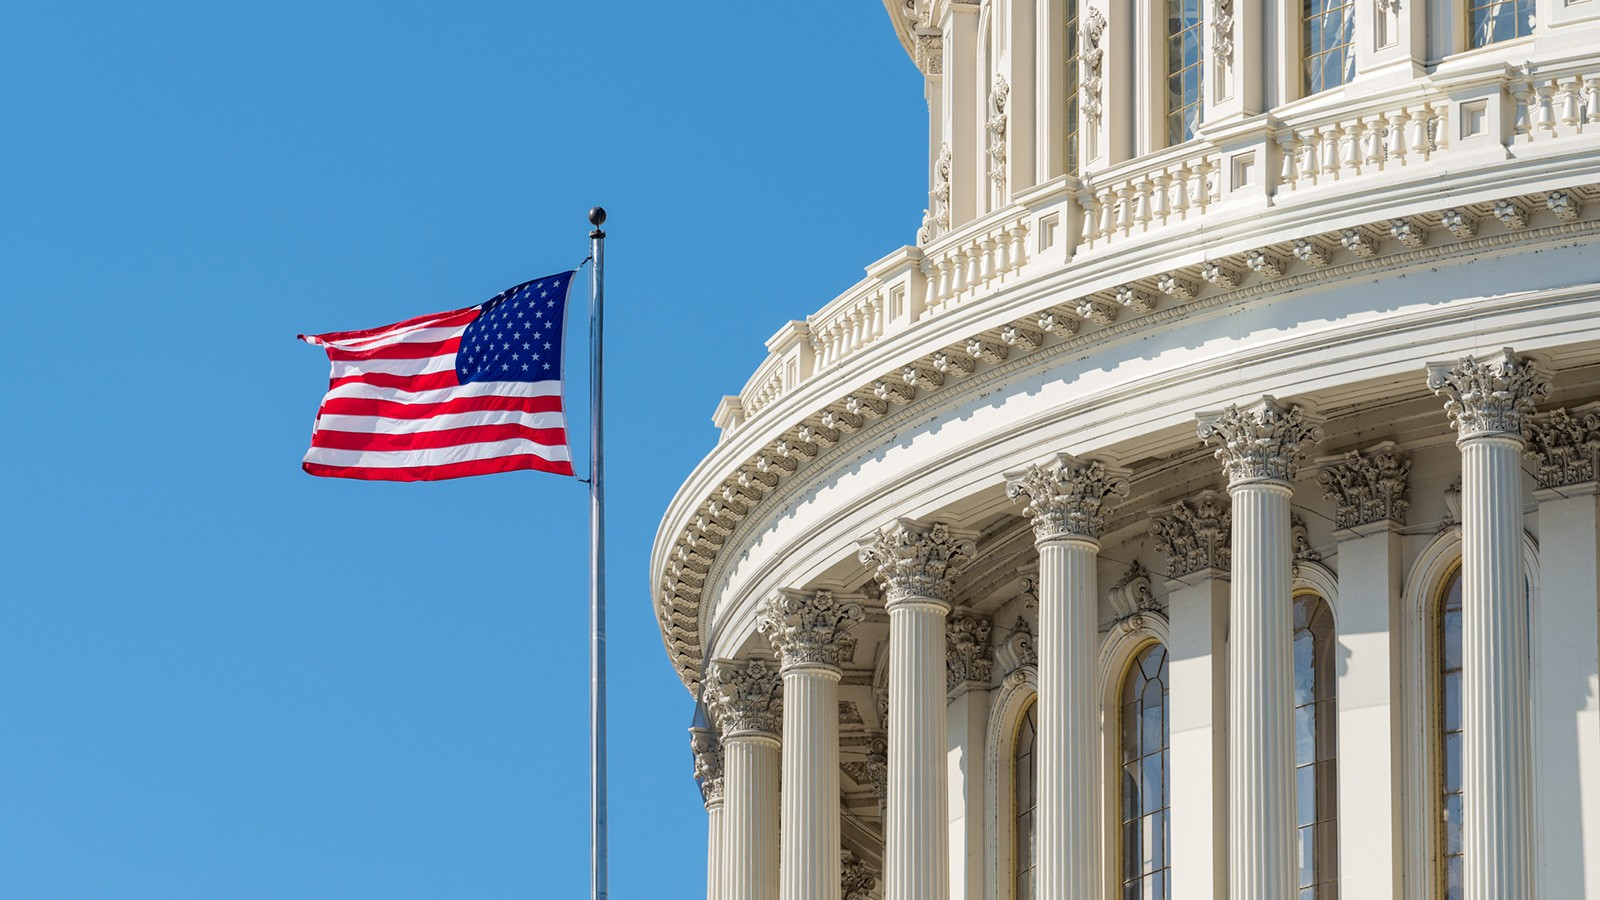 US capital building and flag